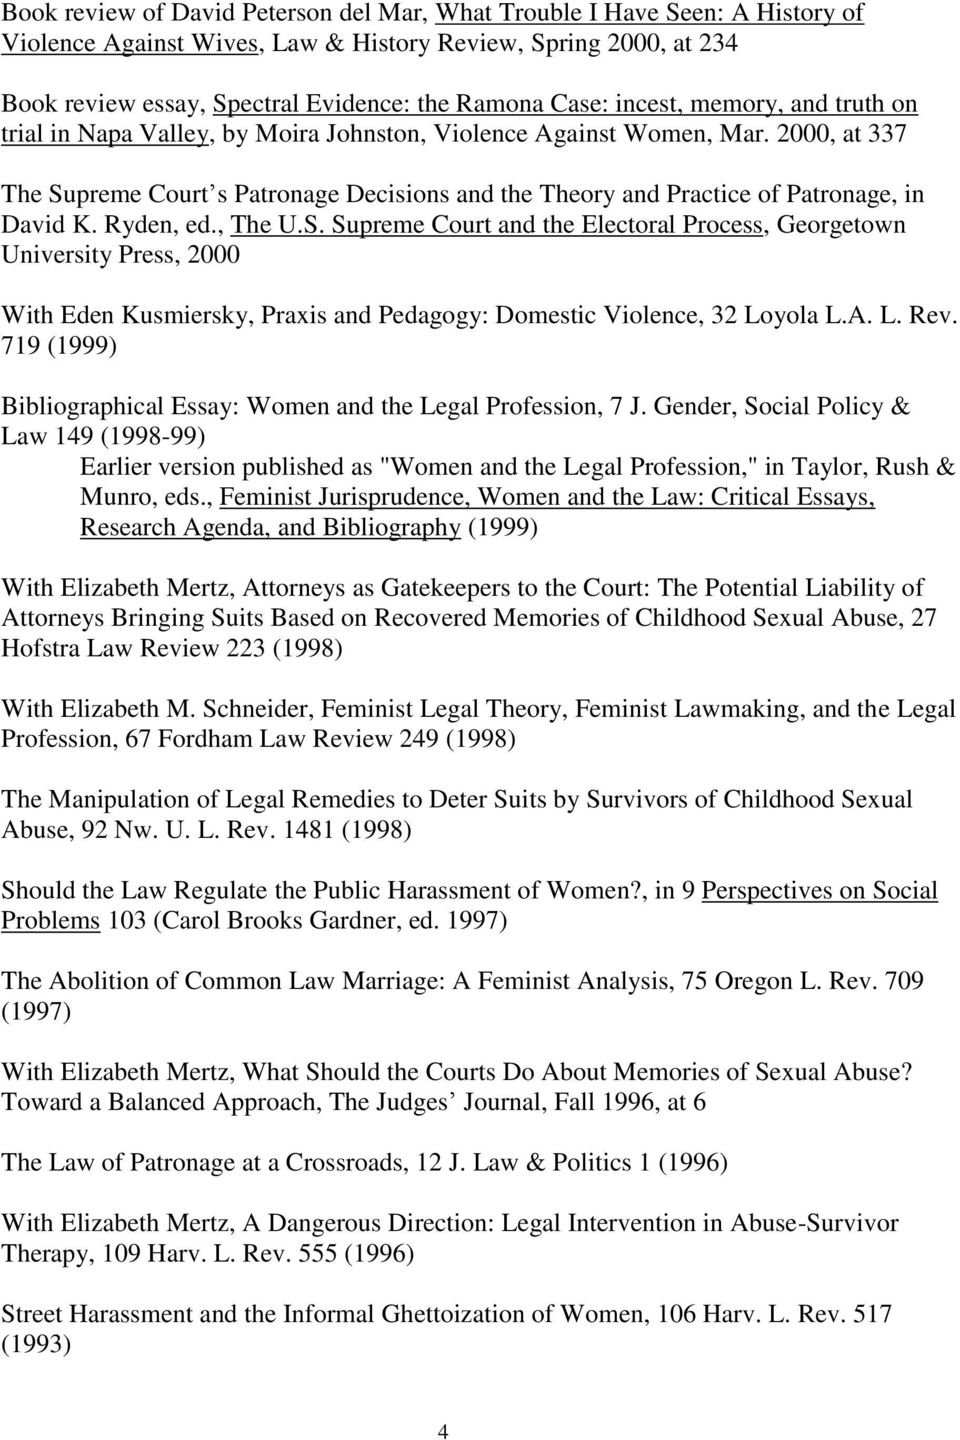 2000, at 337 The Supreme Court s Patronage Decisions and the Theory and Practice of Patronage, in David K. Ryden, ed., The U.S. Supreme Court and the Electoral Process, Georgetown University Press, 2000 With Eden Kusmiersky, Praxis and Pedagogy: Domestic Violence, 32 Loyola L.